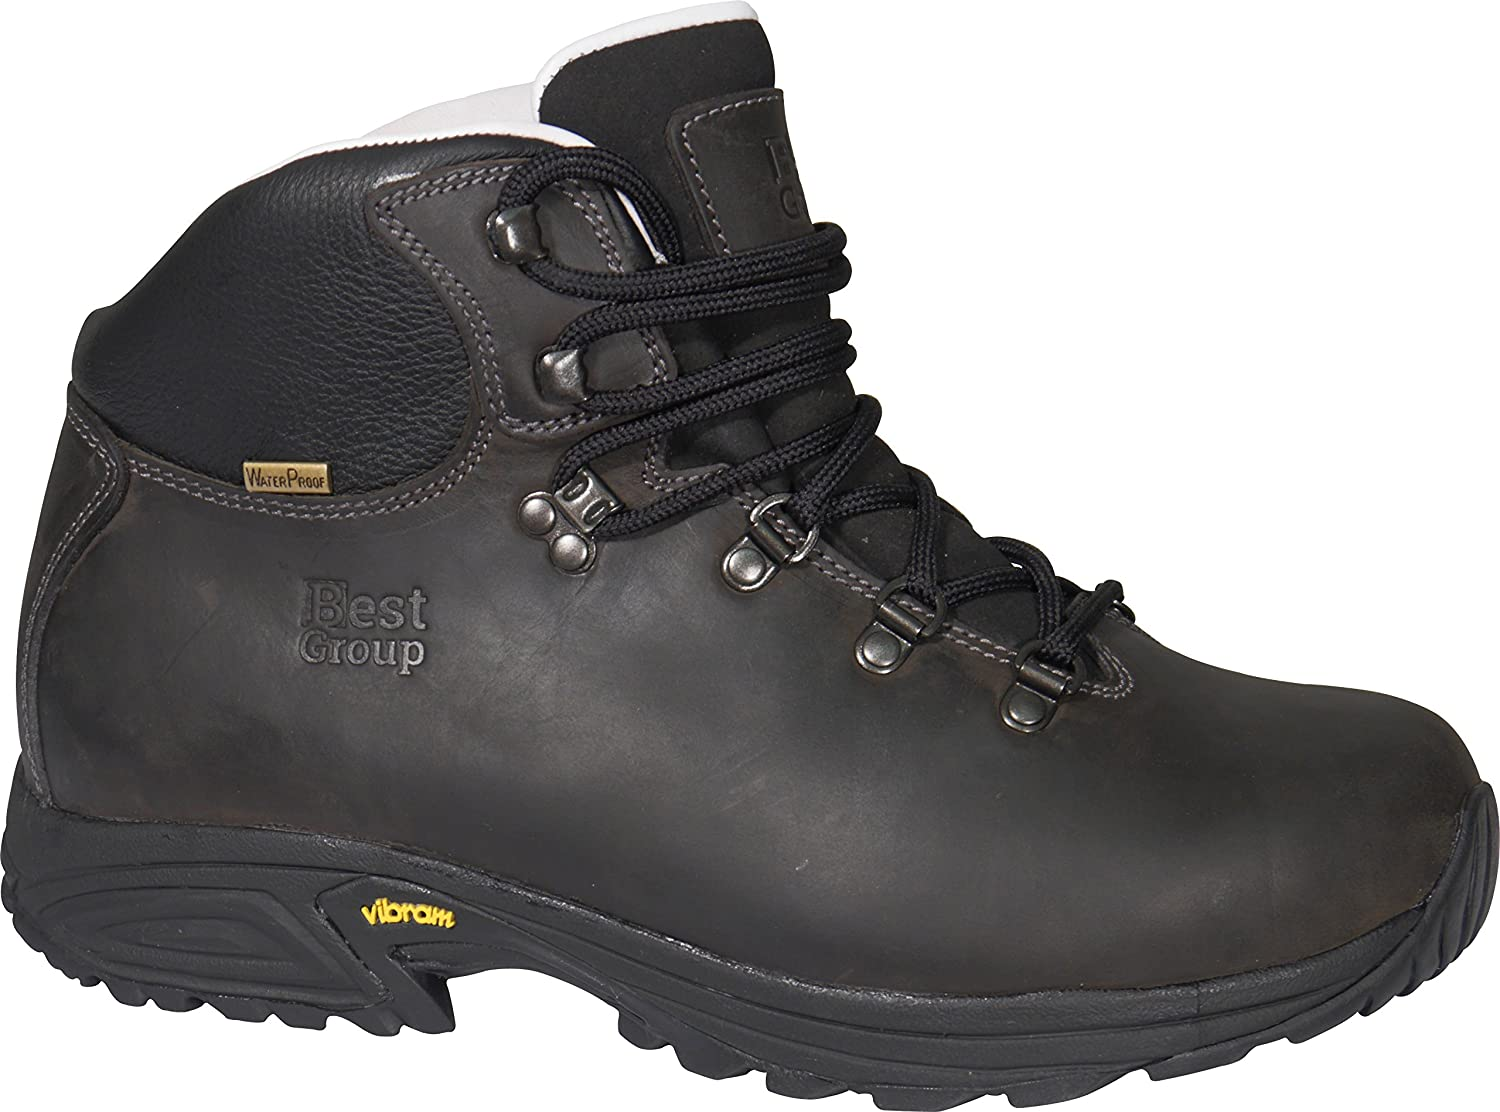 b5749032a10 Best Group Storm Walking Boots Black: Amazon.co.uk: Sports & Outdoors